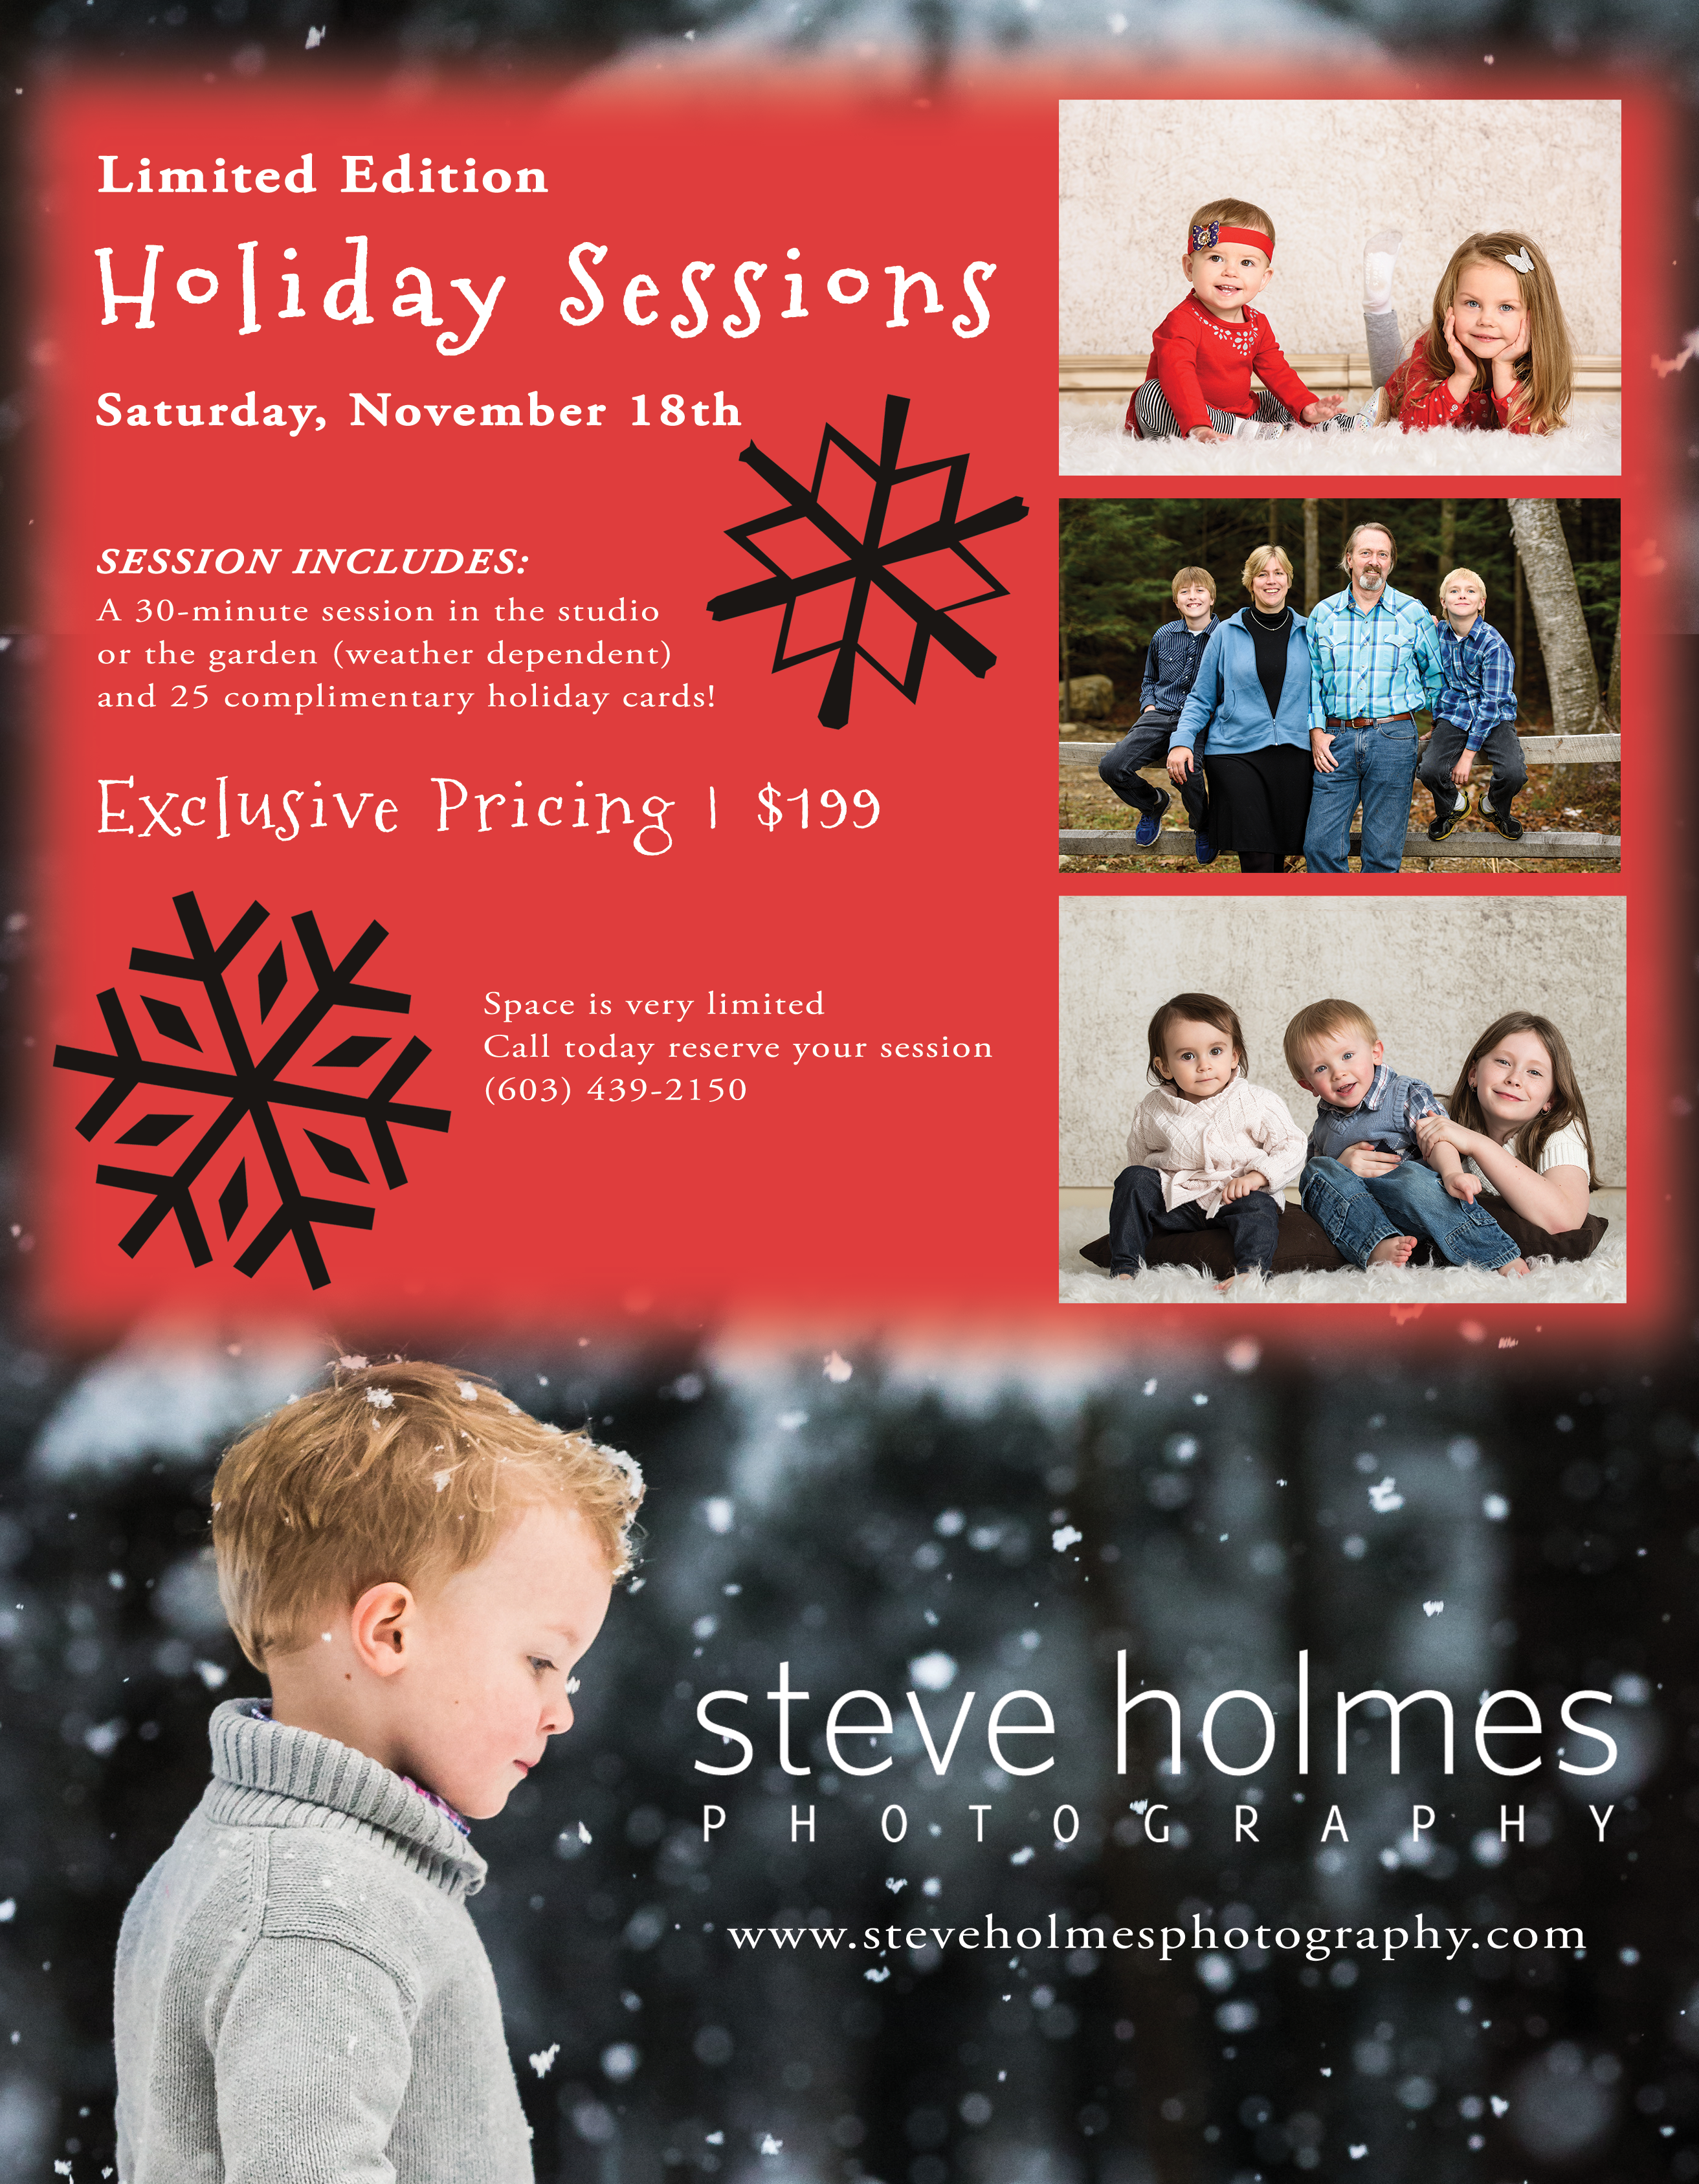 Promotional information for Steve Holmes Photography Limited Edition Holiday Sessions